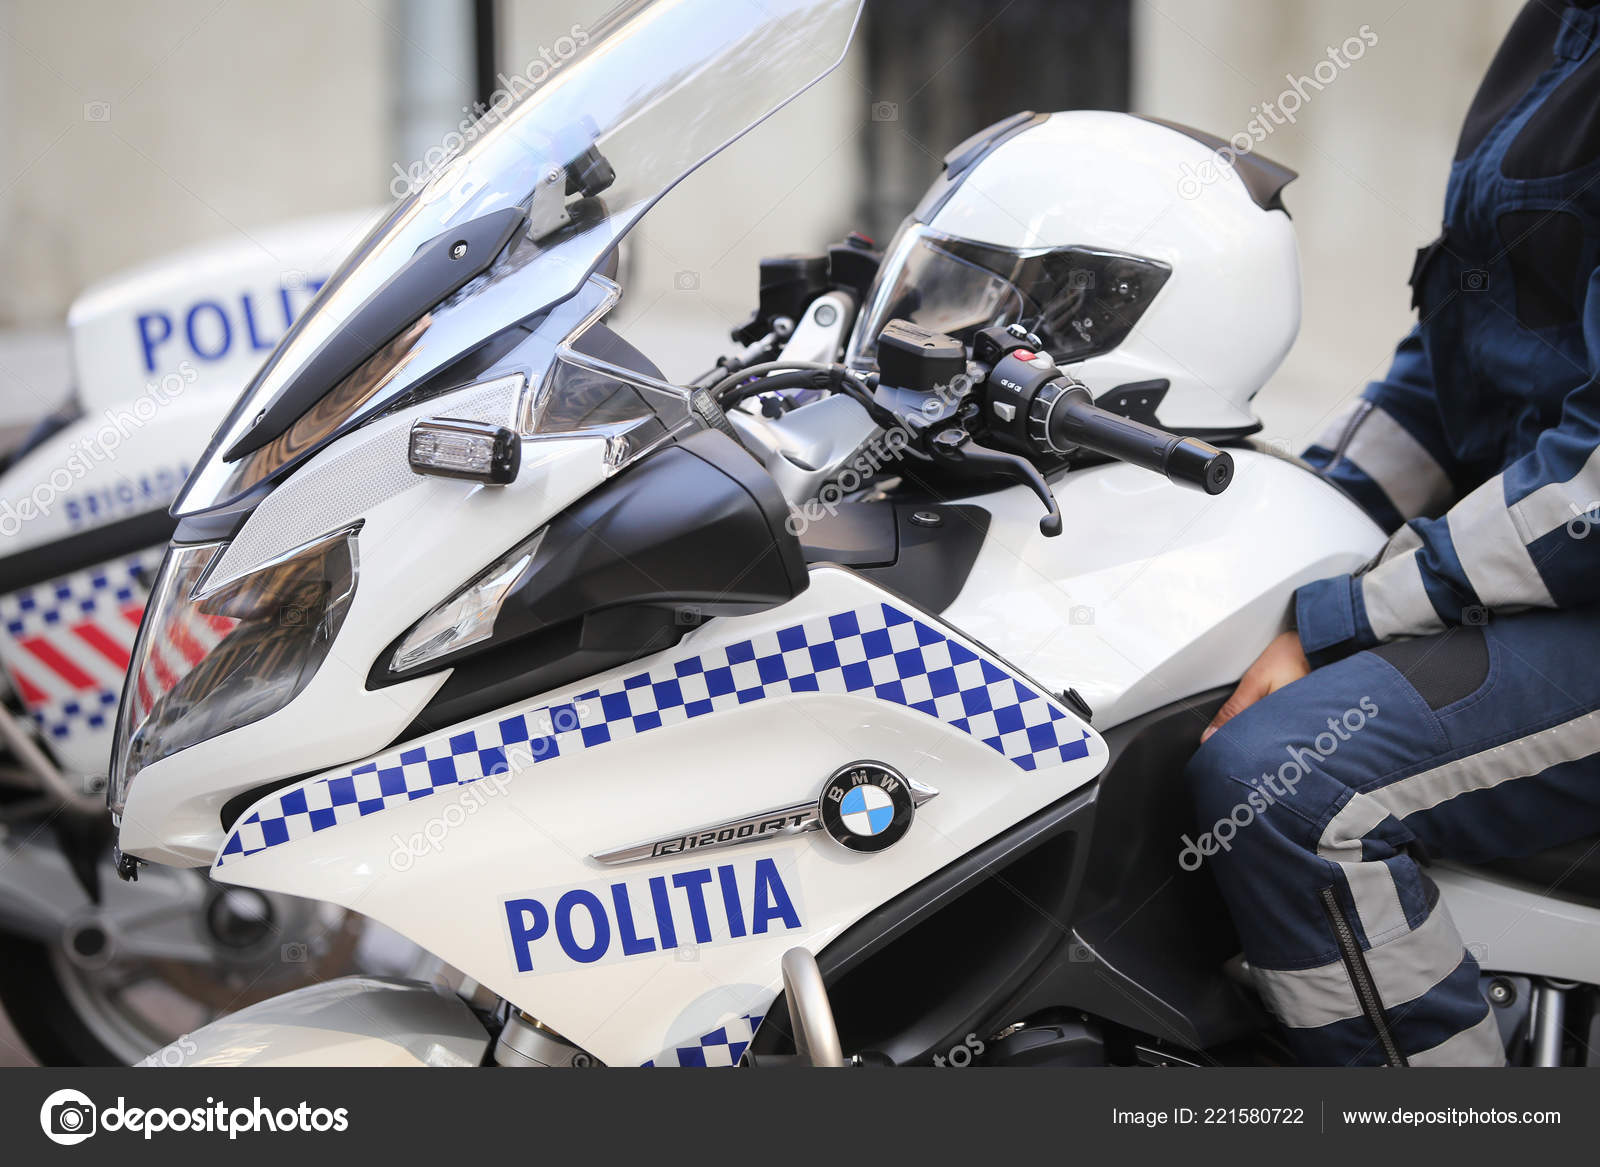 hight resolution of bucharest romania october 2018 bmw police motorcycles romanian police force stock photo